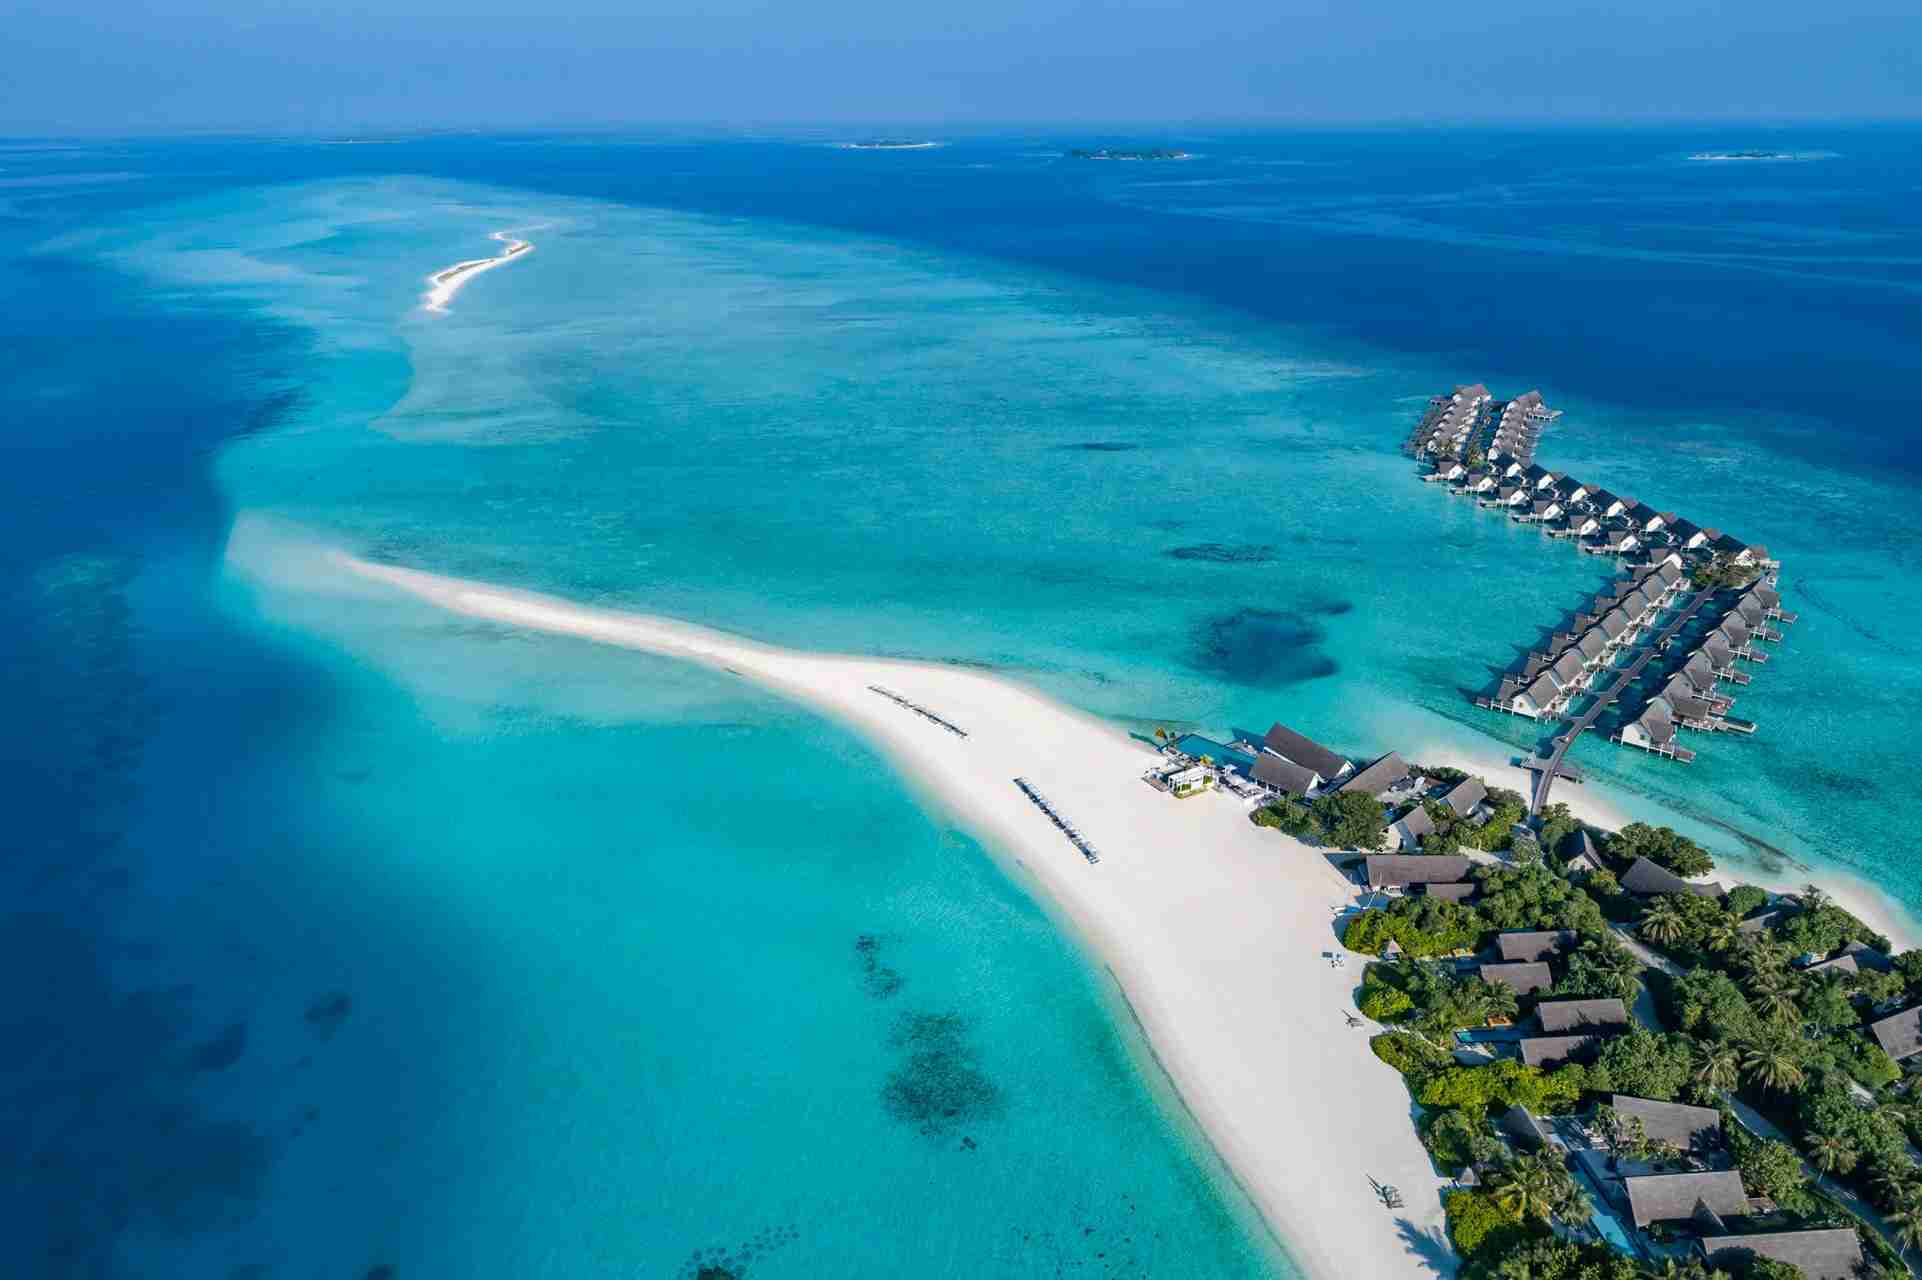 White-sand beaches, crystal-clear water and luxury resorts with overwater bungalows such as the Four Seasons Resort Maldives Laadaa Giraavaru, shown here, are top allures of the Maldives. (Photo courtesy of Four Seasons).